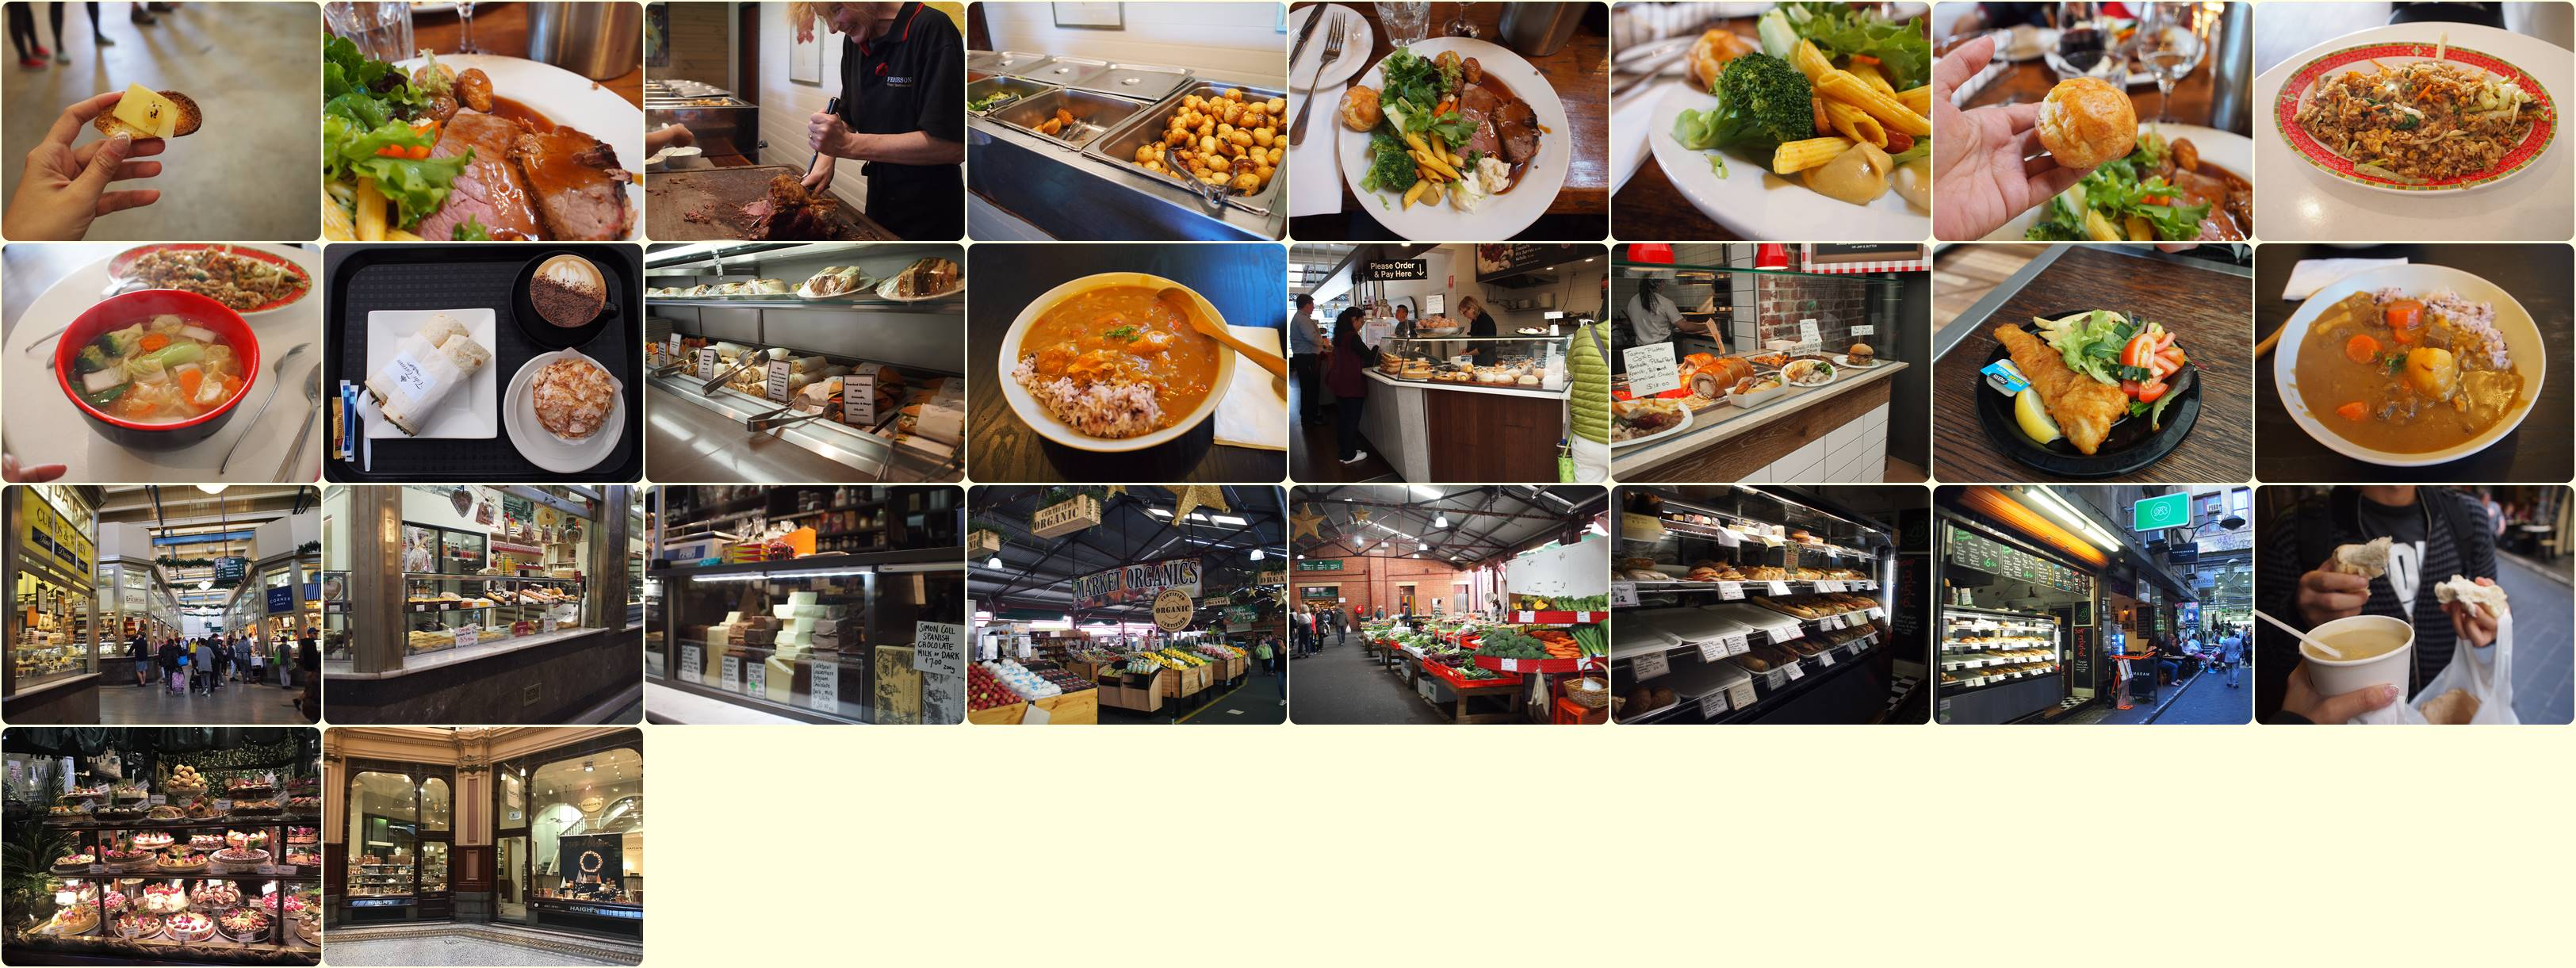 A variety of great cuisines in Melbourne, Australia.